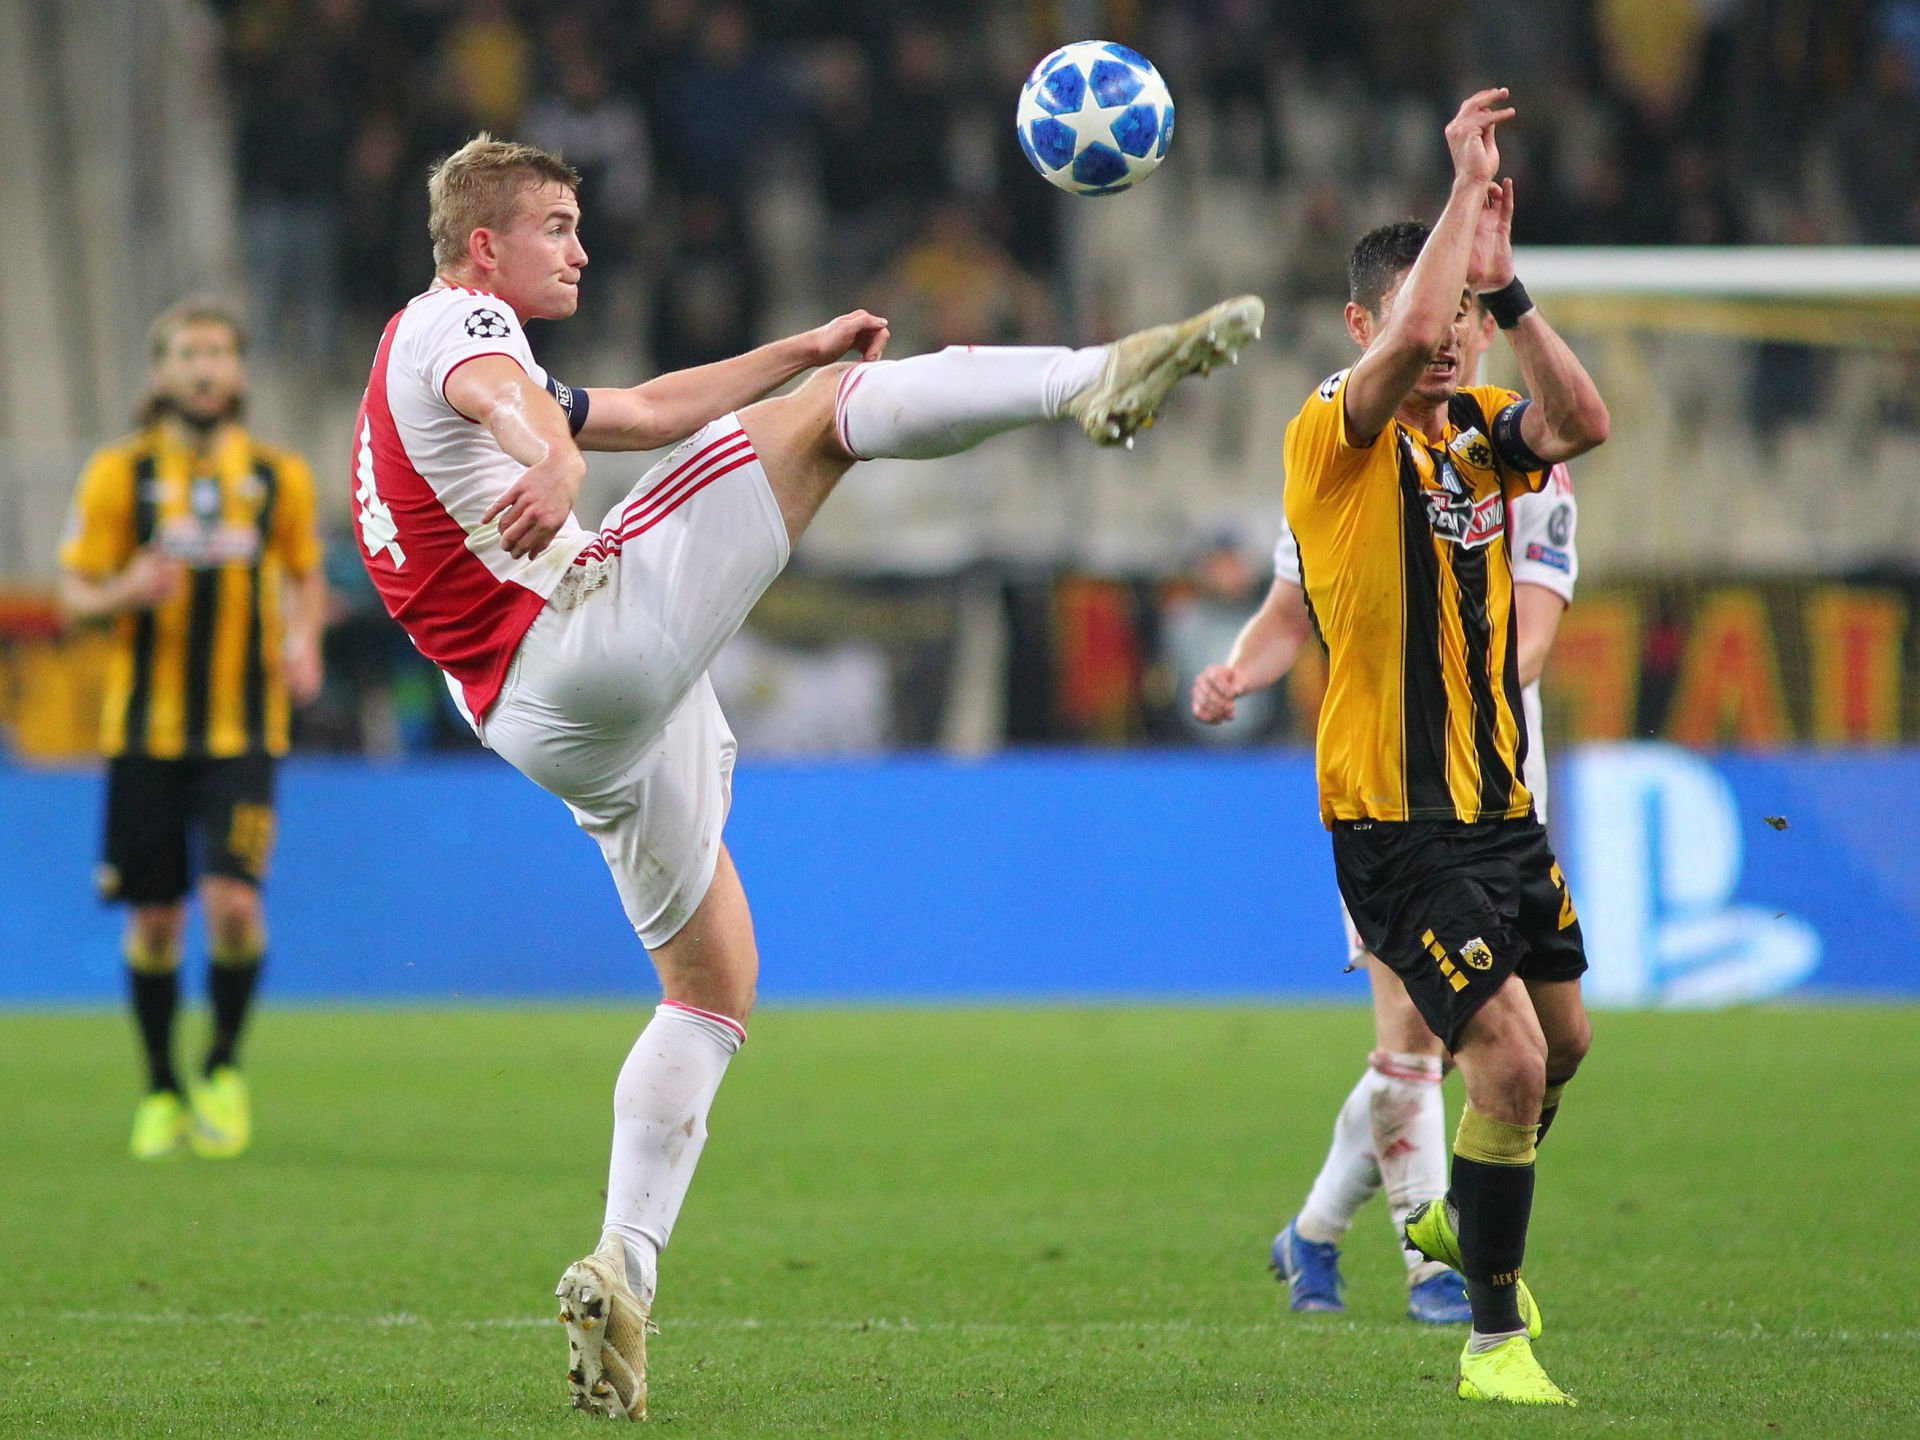 27.11.2018, Olympiastadion Athen, Athen, GRE, UEFA CL, AEK Athen vs Ajax Amsterdam, 5. Runde, im Bild Petros Mantalos of AEK Athens and Matthijs De Ligt of Ajax Amsterdam // Petros Mantalos of AEK Athens and Matthijs De Ligt of Ajax Amsterdam during the UEFA Champions League 5th round match between AEK Athen and Ajax Amsterdam at the Olympiastadion Athen in Athen, Greece on 2018/11/27. EXPA Pictures © 2018, PhotoCredit: EXPA/ Focus Images/ Yannis Halas *****ATTENTION - for AUT, GER, FRA, ITA, SUI, POL, CRO, SLO only***** FOT. EXPA / NEWSPIX.PL AUSTRIA, Italy, Spain, Slovenia, Serbia, Croatia, Germany, UK, USA and Sweden OUT! --- Newspix.pl *** Local Caption *** www.newspix.pl mail us: info@newspix.pl call us: 0048 022 23 22 222 --- Polish Picture Agency by Ringier Axel Springer Poland